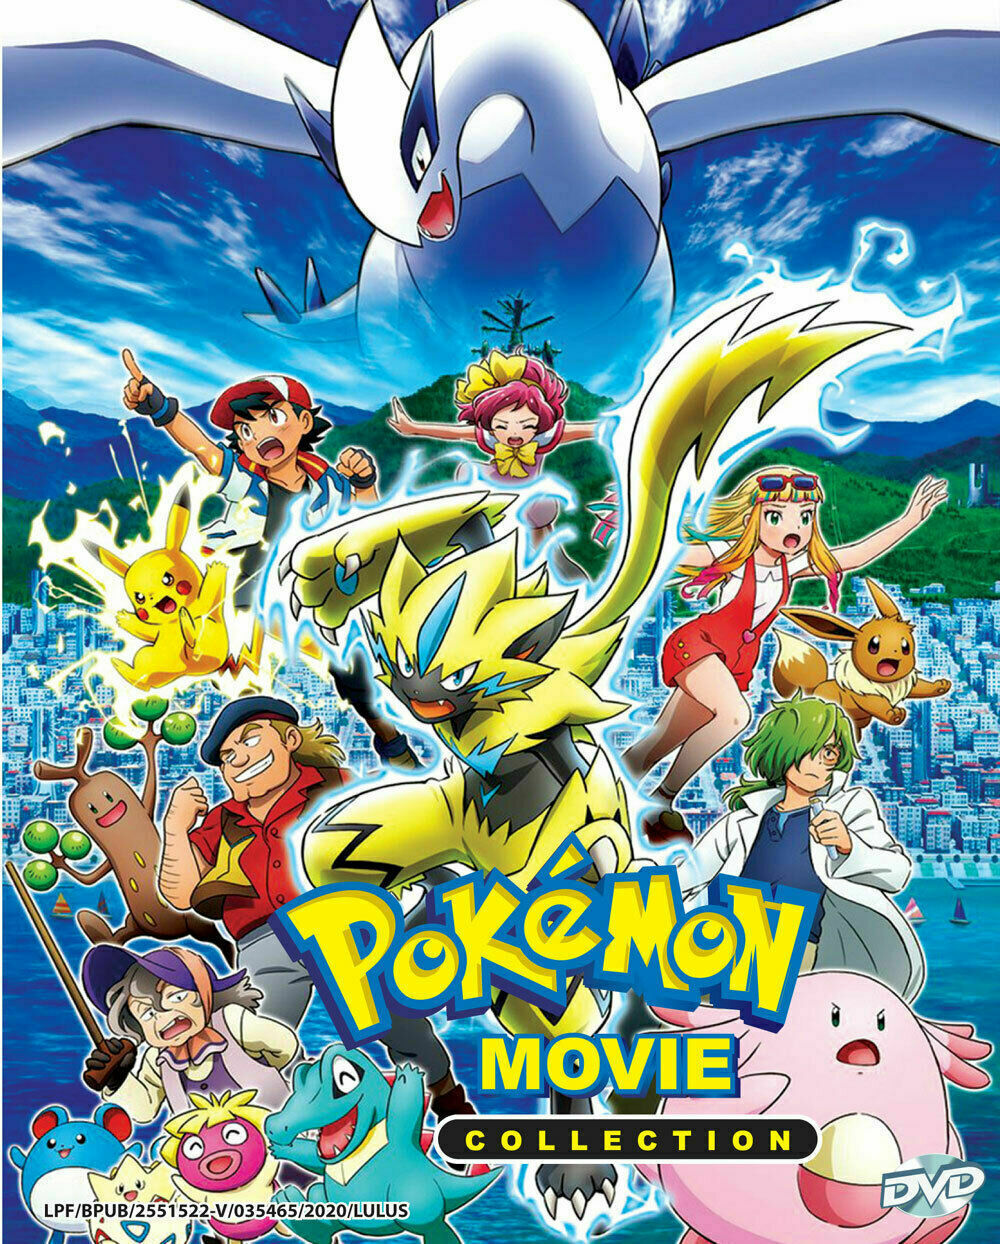 Pokemon The Movie Collection (25 Movies) DVD with English Subtitle Ship From USA